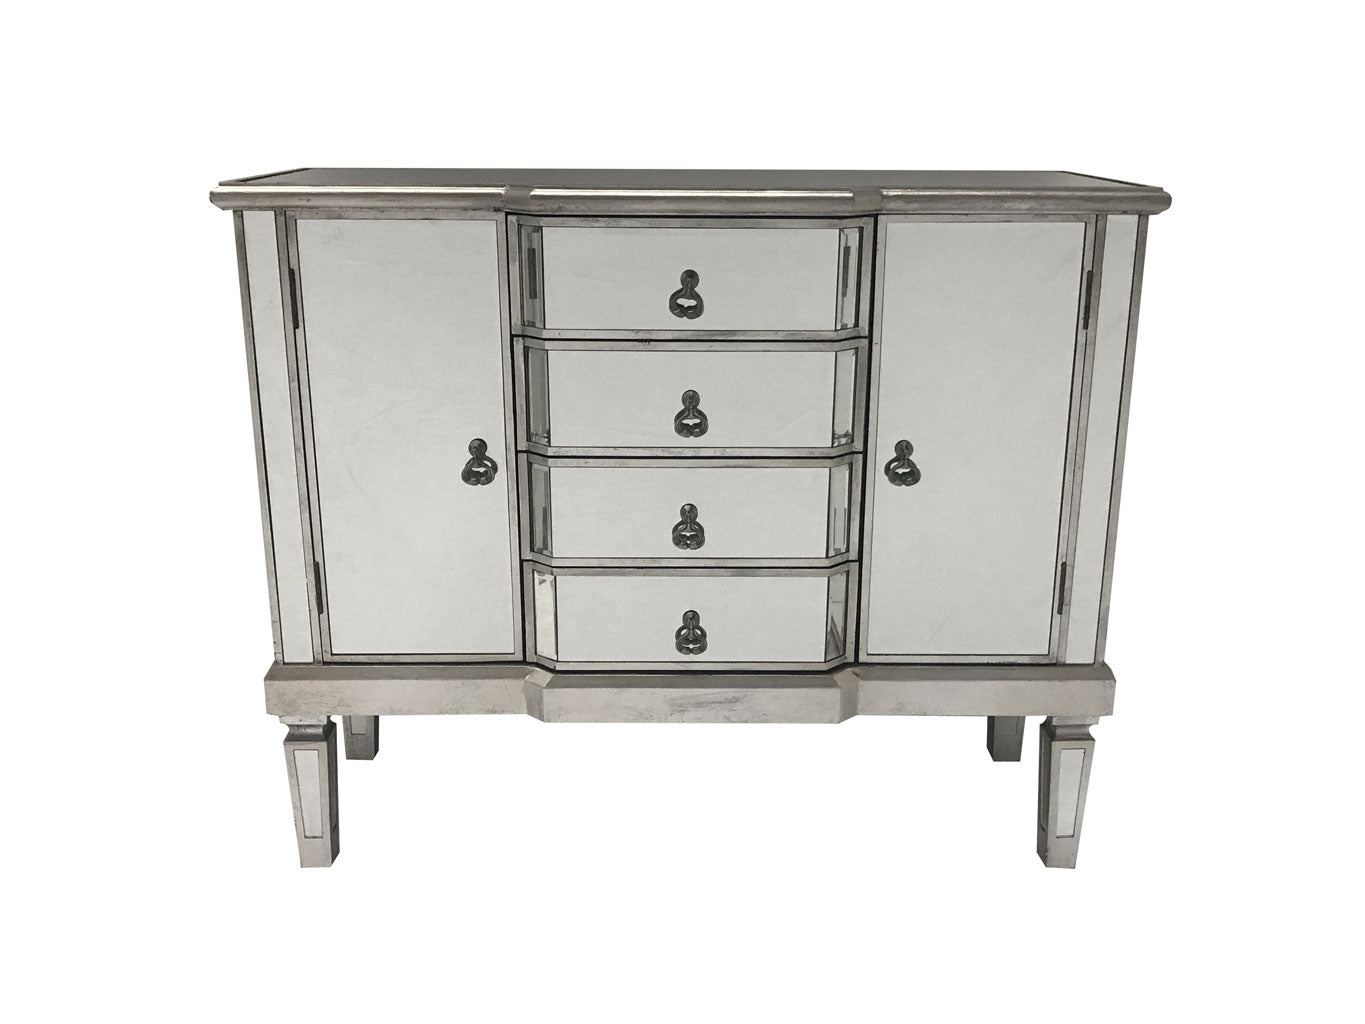 Charleston Mirrored Sideboard with 4 Drawers and 2 Cupboards, brass drop handles, wood and mirror, antiqued silver.